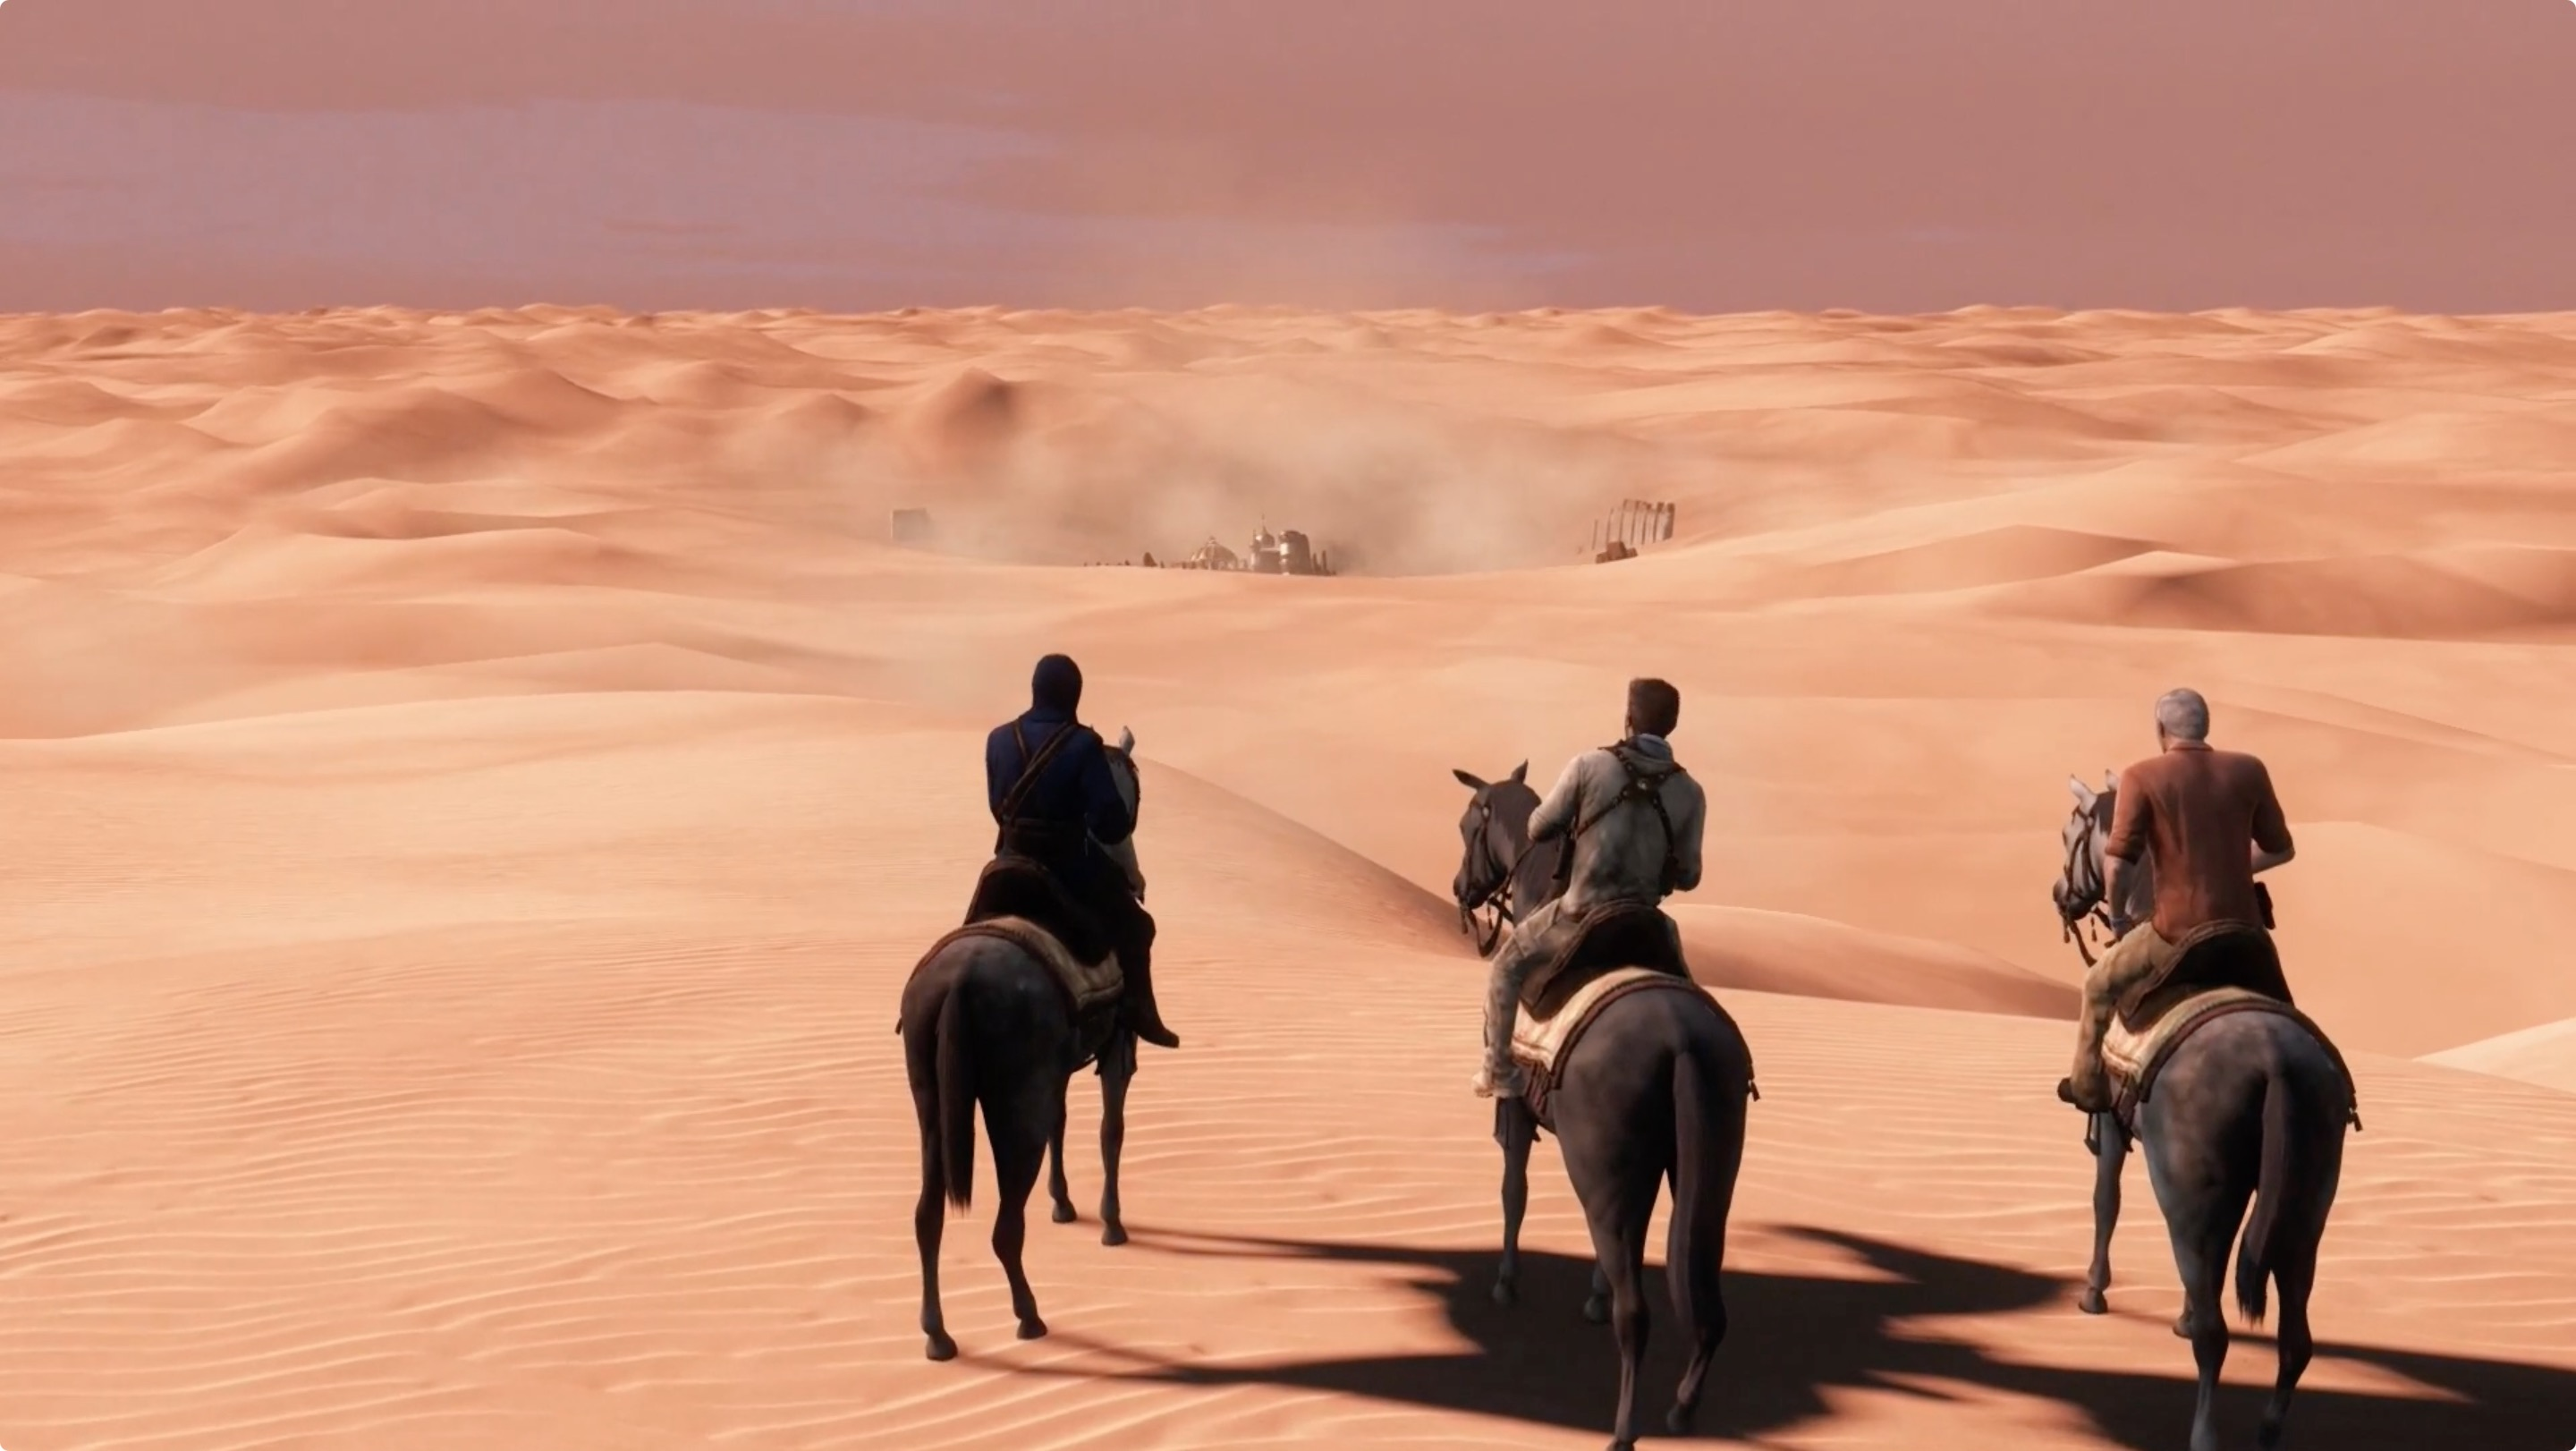 Uncharted 3: Drake's Deception 'The Dreamers of the Day' treasure locations guide